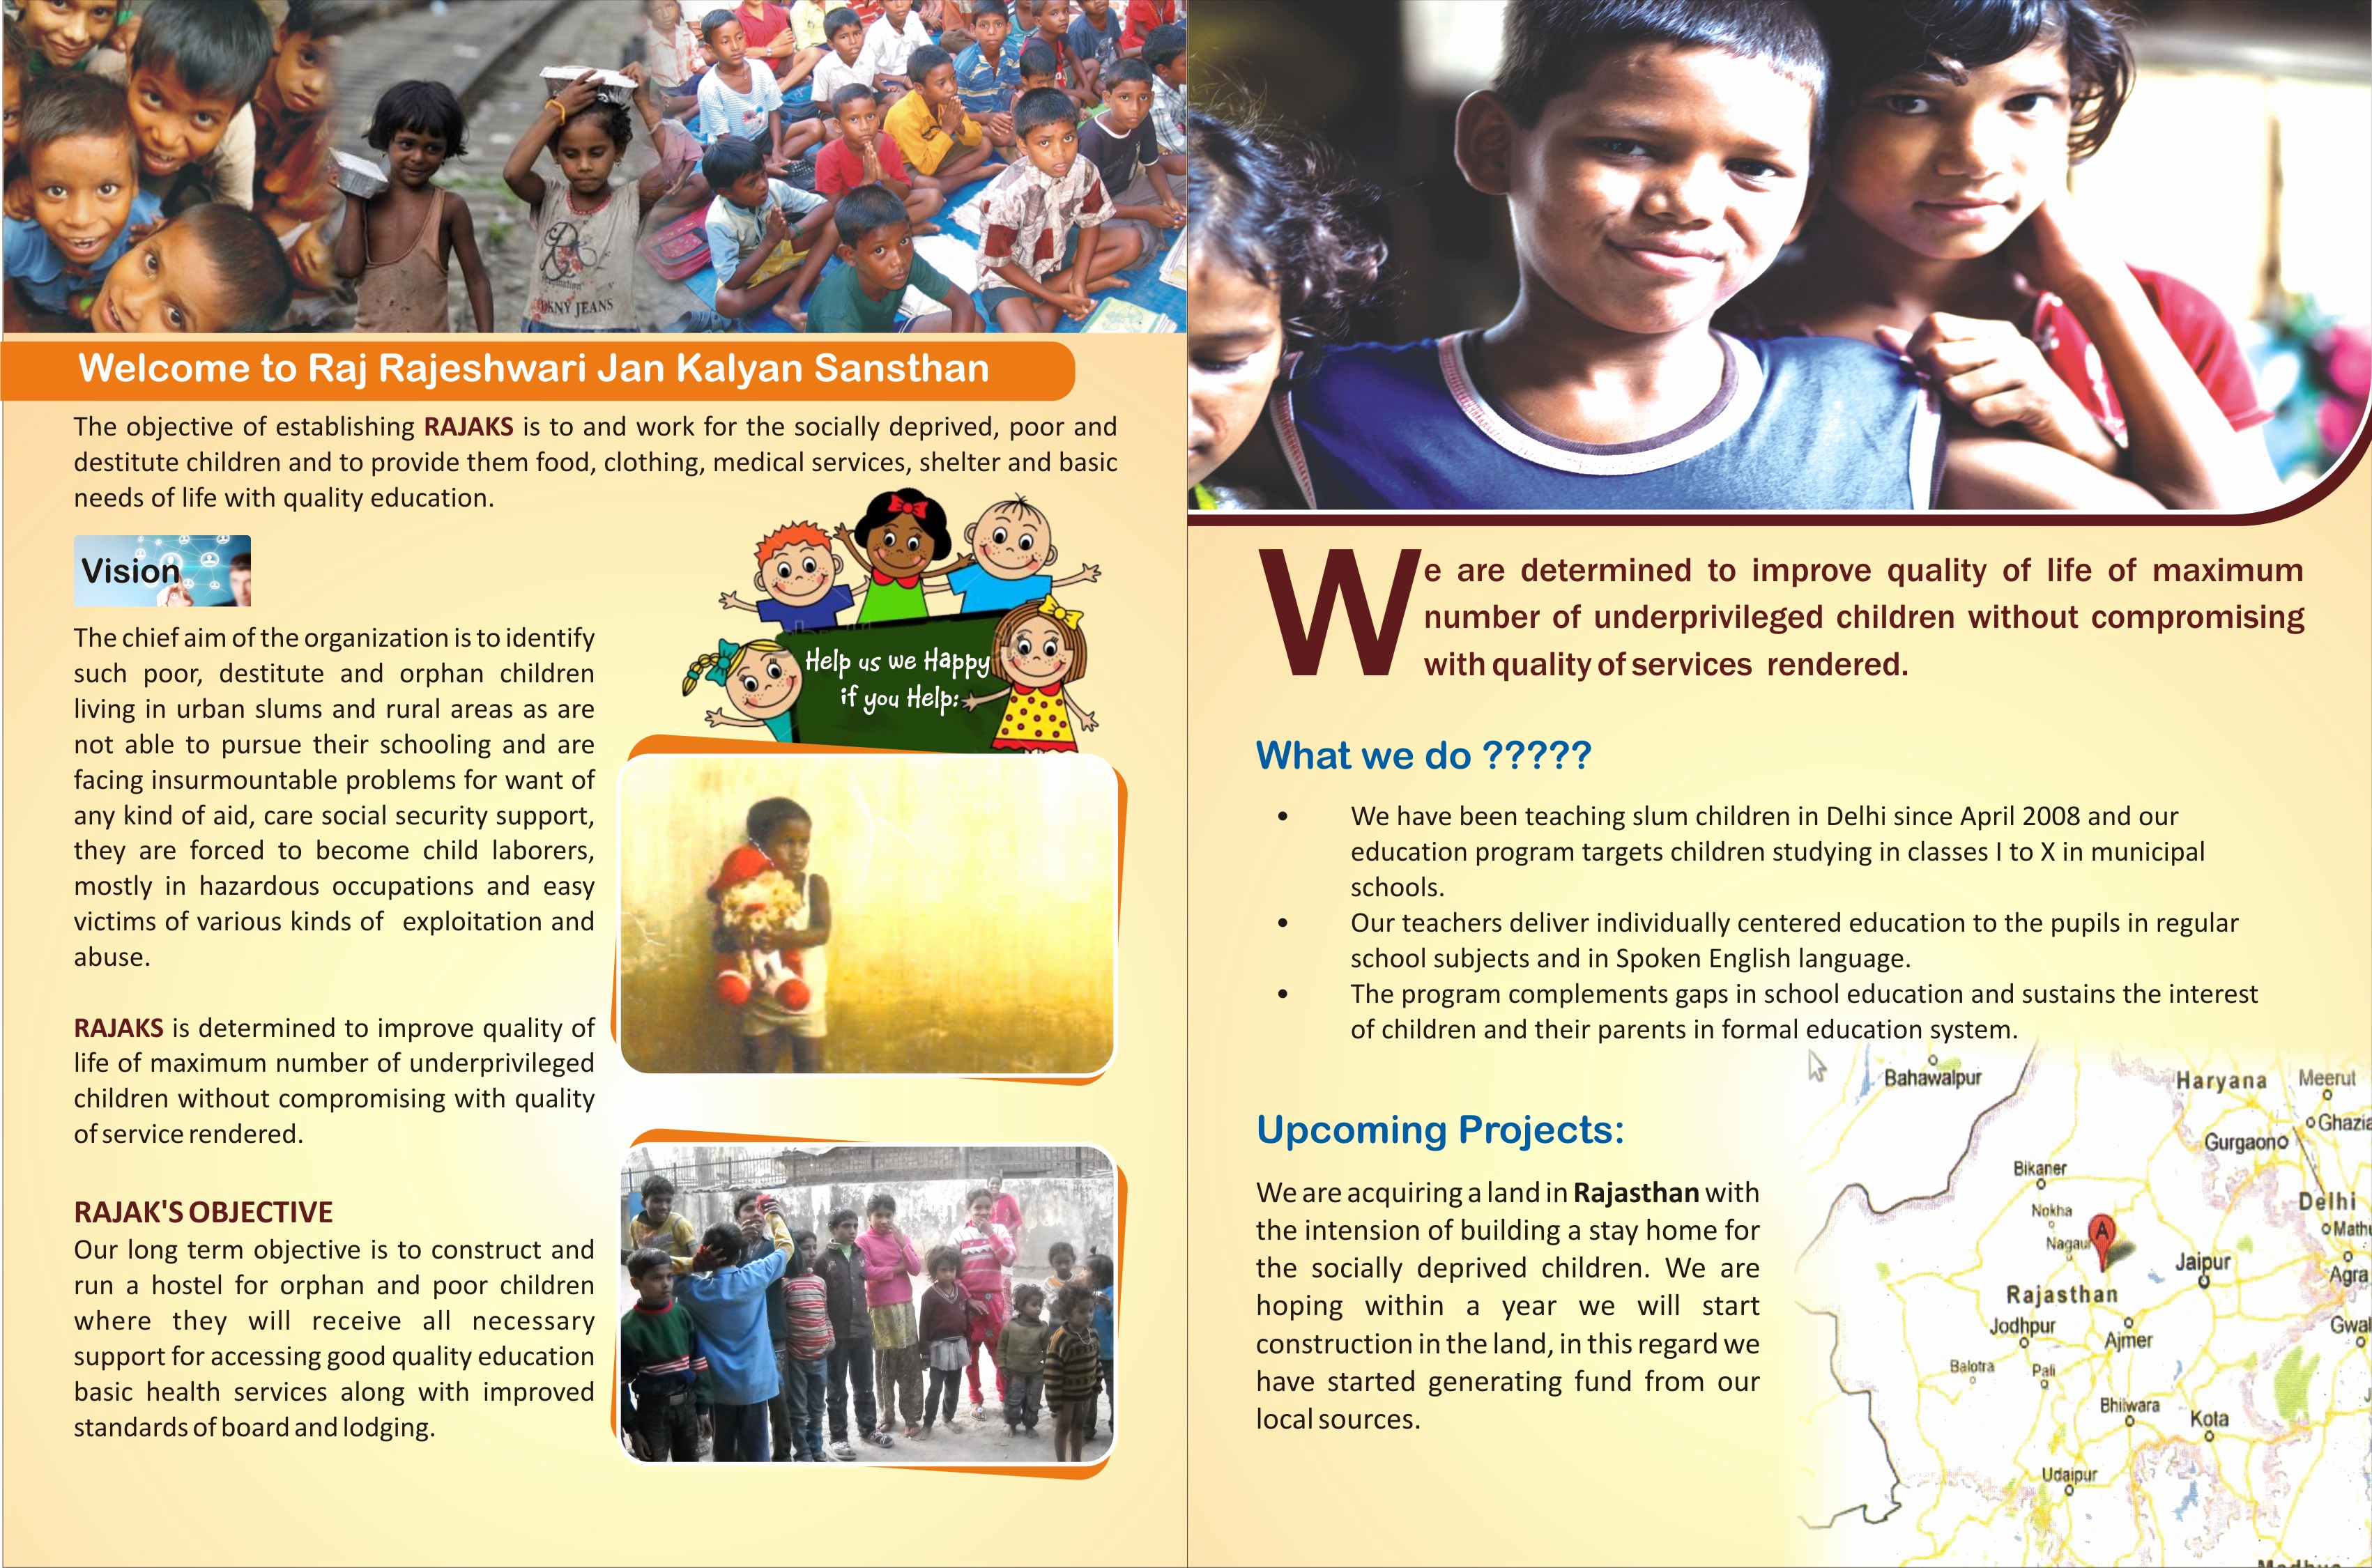 Ngo Brochure Templates Sample Flyers For Organizations 25 In Ngo Brochure Templates